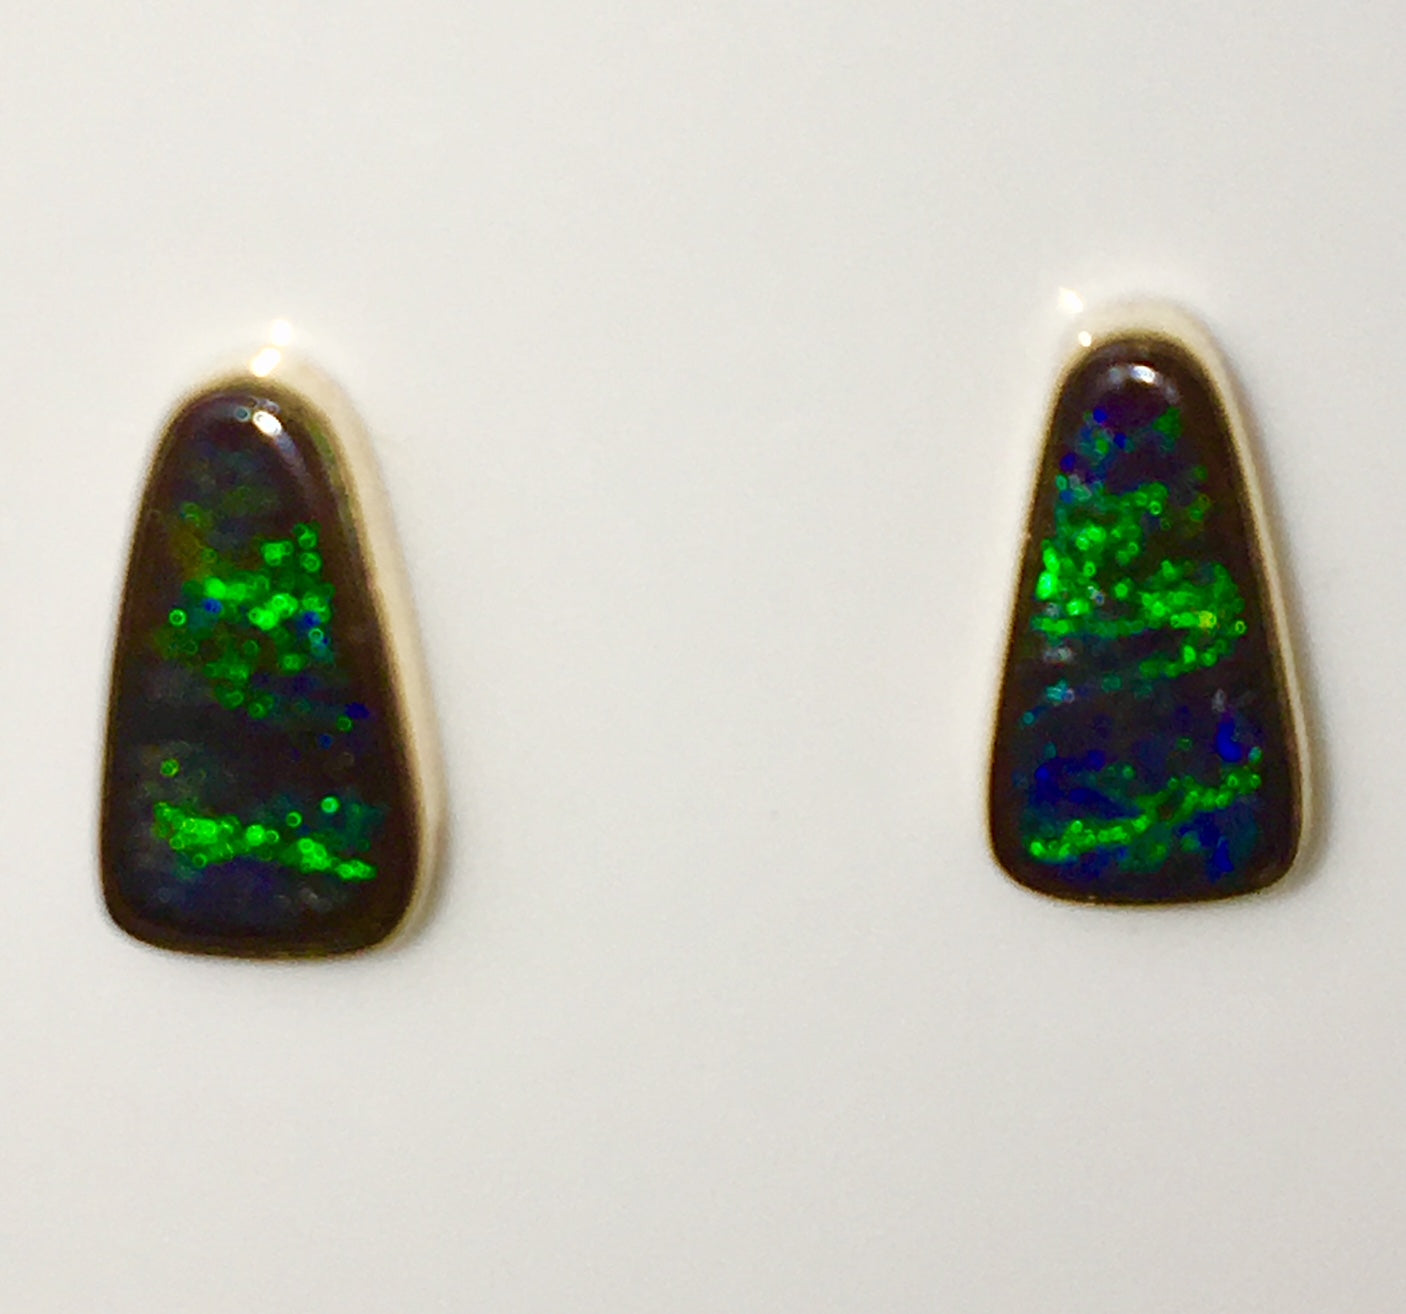 Green Blue solid boulder opal stud earrings